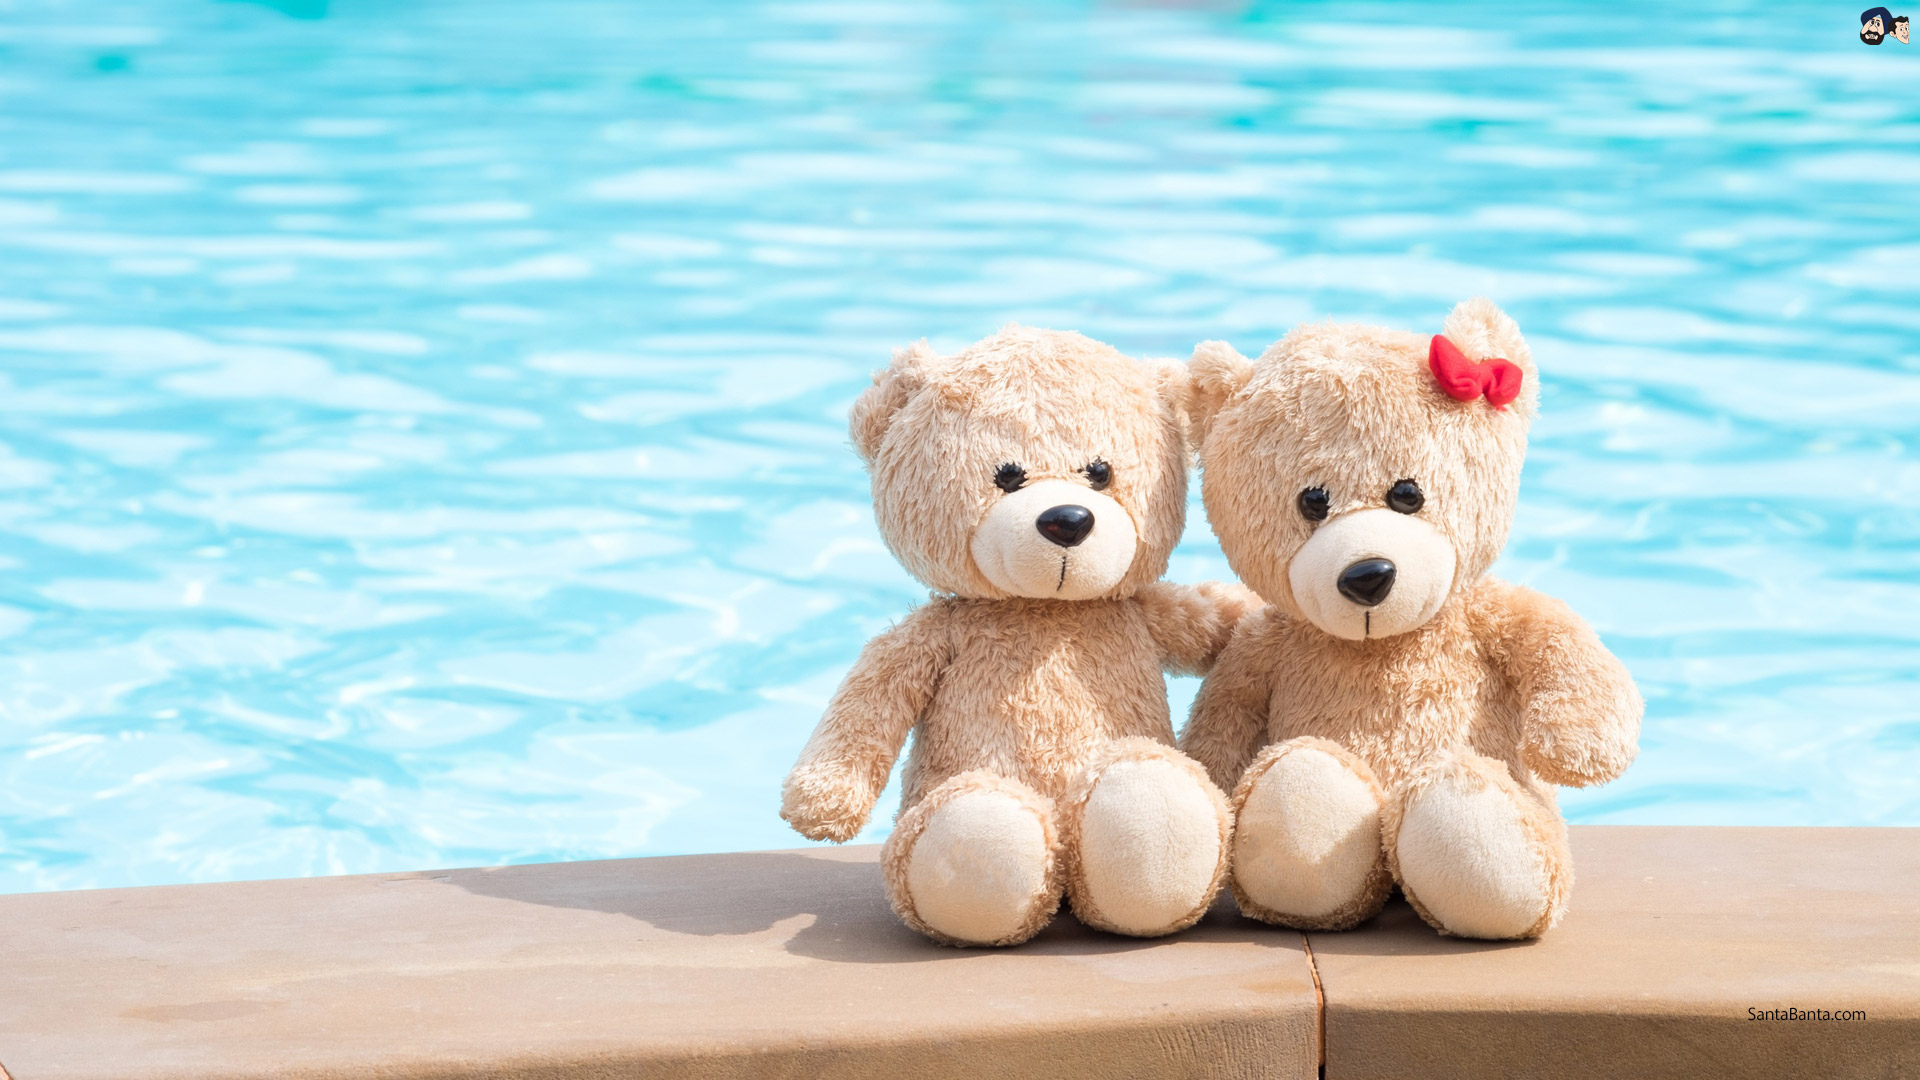 Best Teddy Bear Captions For Instagram